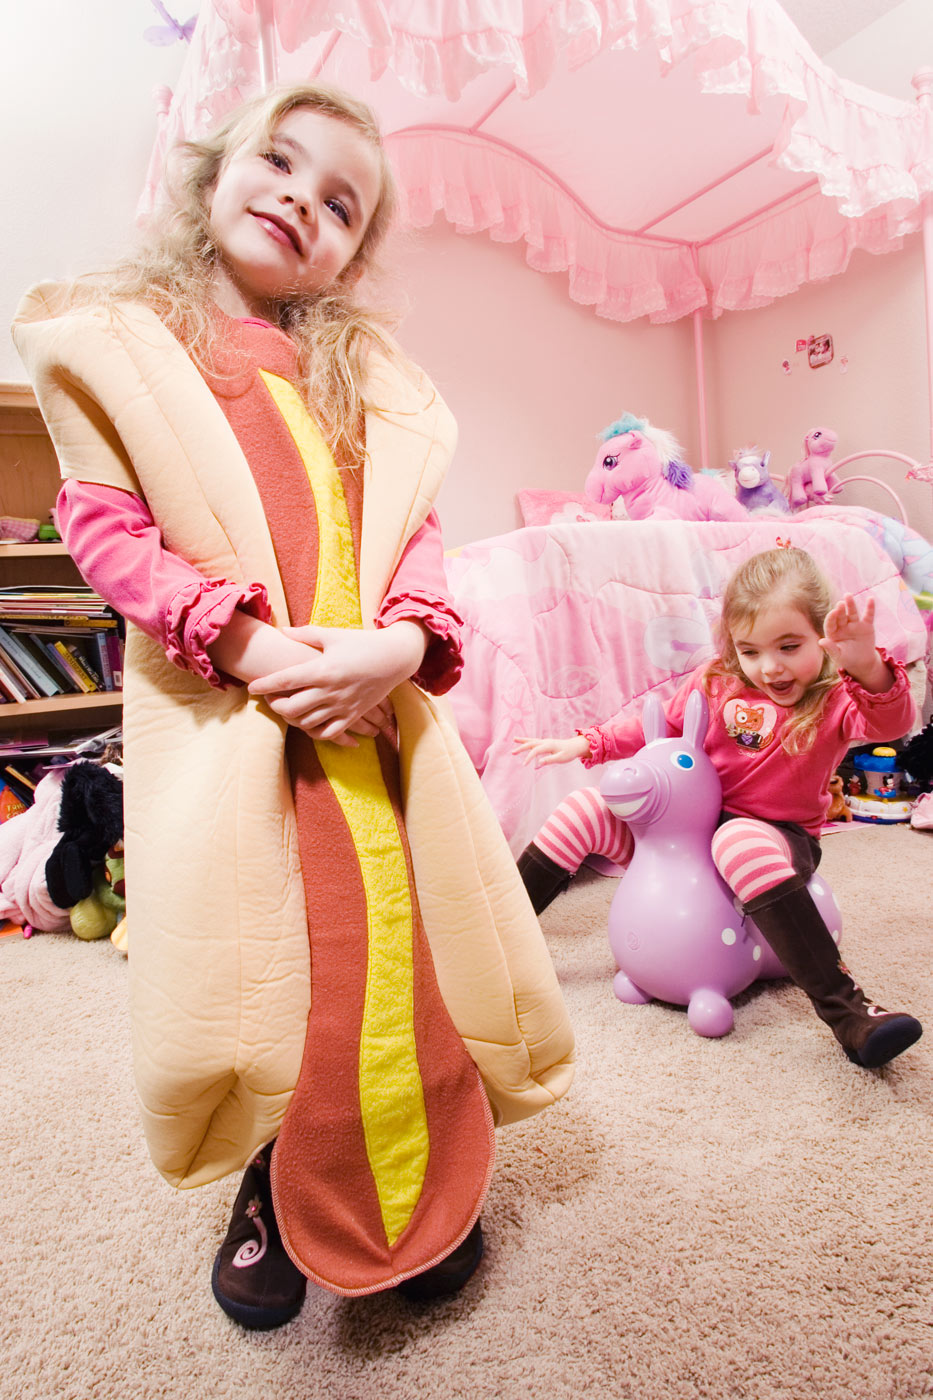 Portland editorial photography -girl dressed up as an Oscar Mayer hotdog in a pink room with her sister